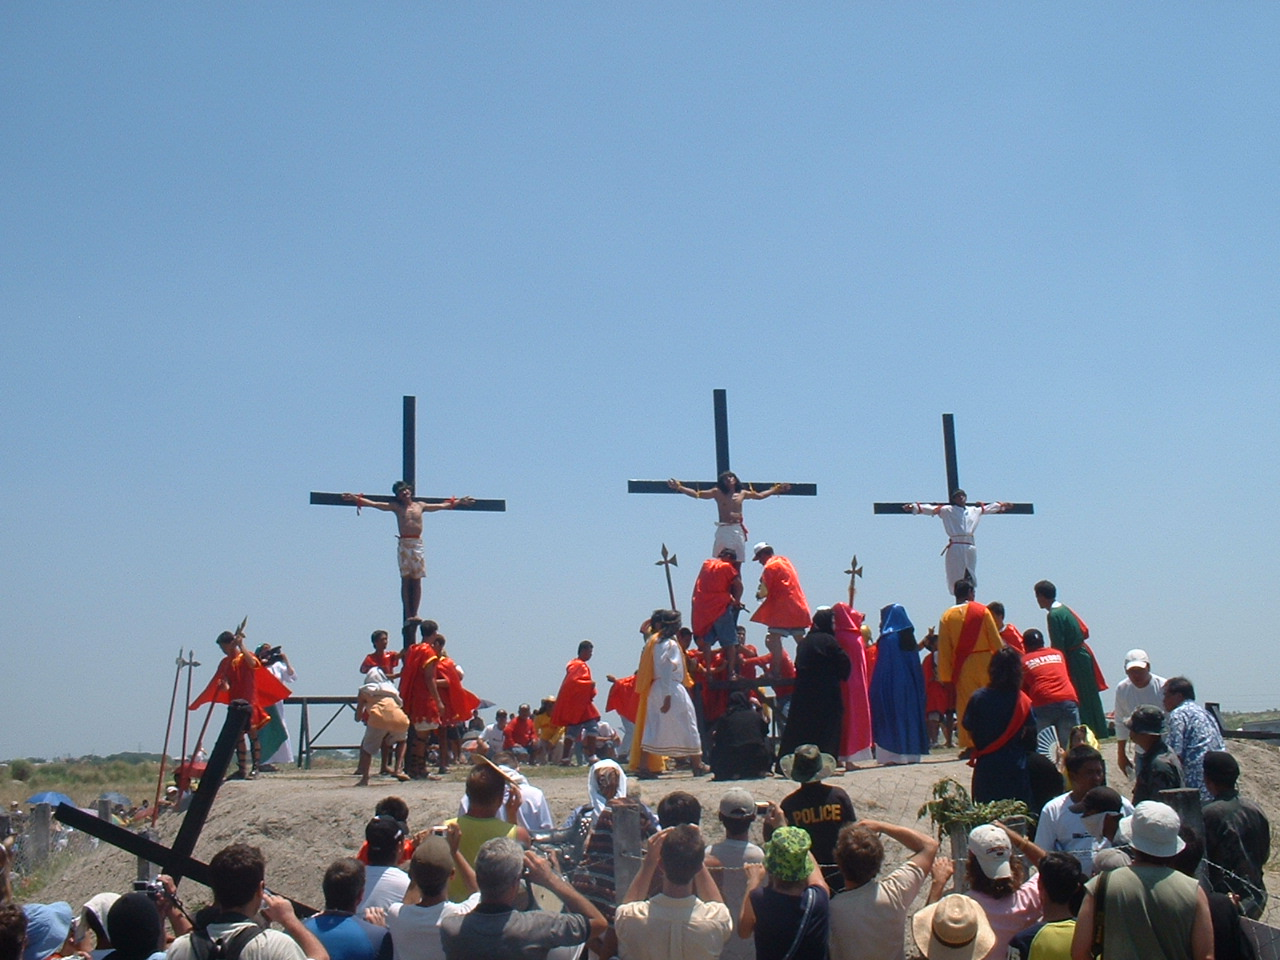 crucifixion_in_san_fernando_pampanga_philippines_easter_2006_p-ad20060414-12h54m52s-r